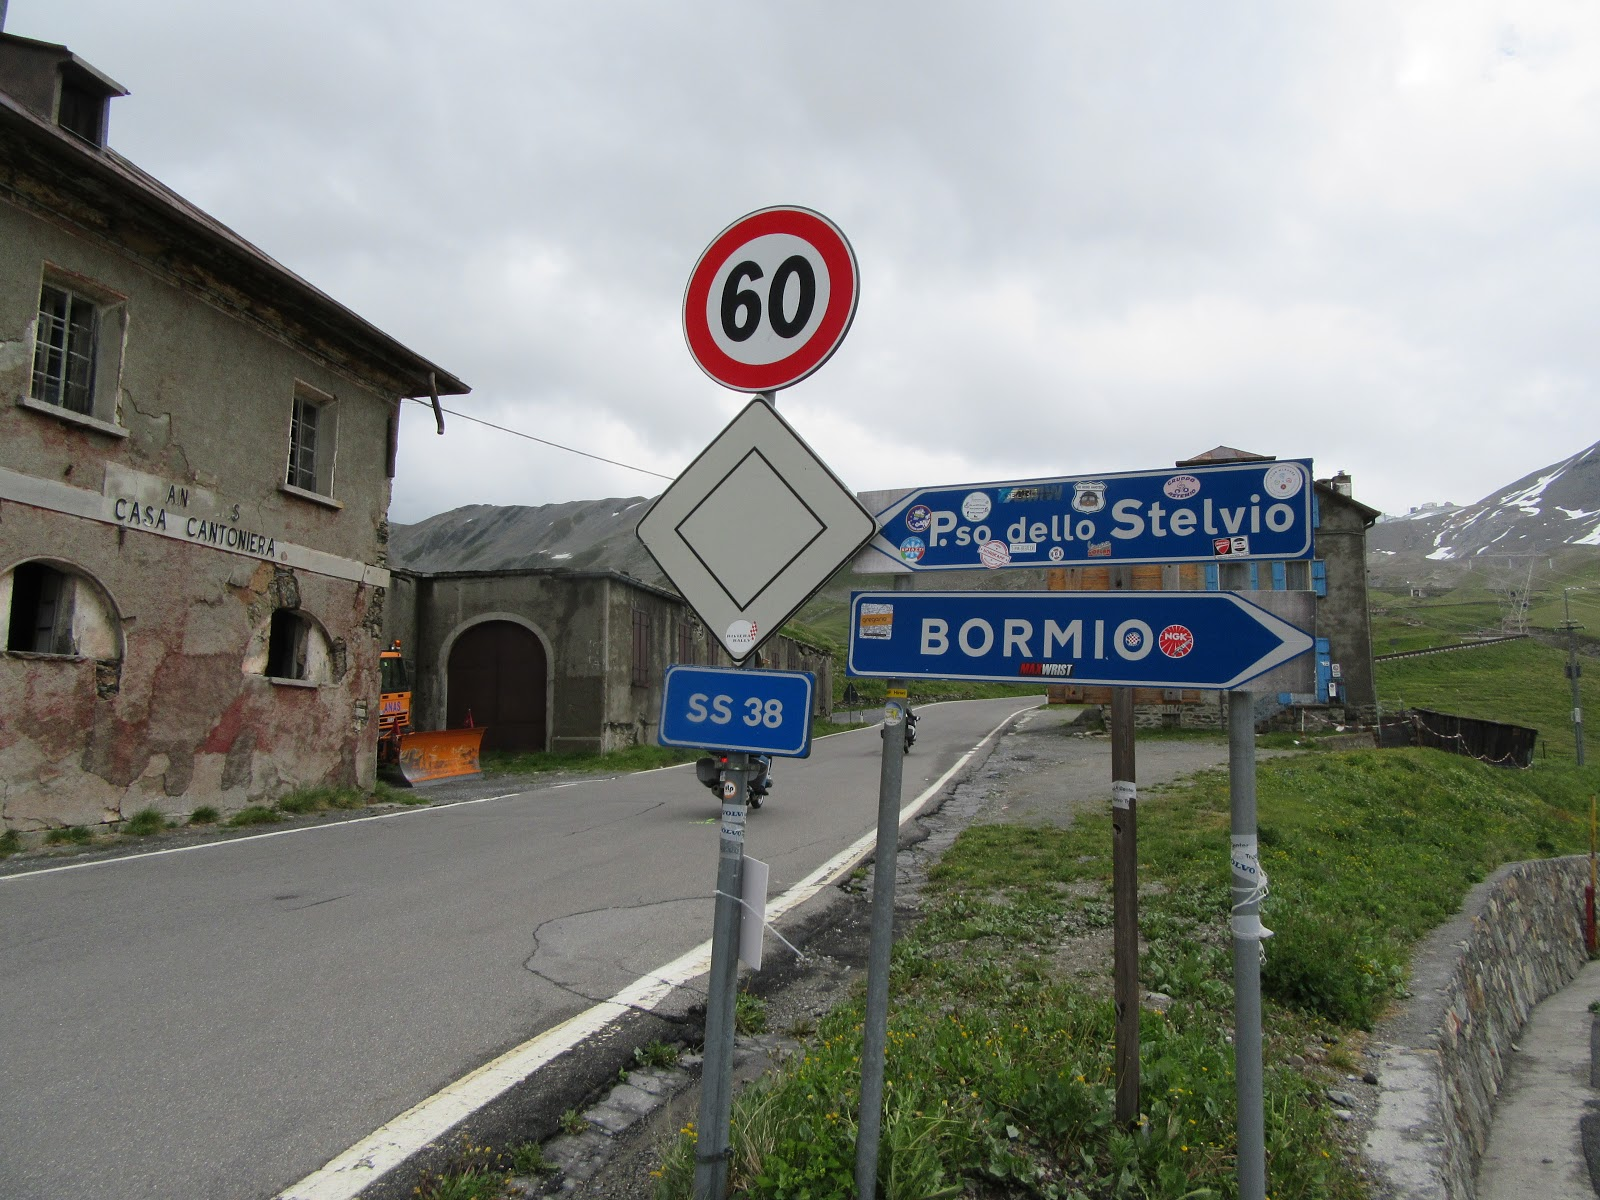 climbing Umbrail Pass by bike - sign to Passo Stelvio and Bormio, road, roadhouse